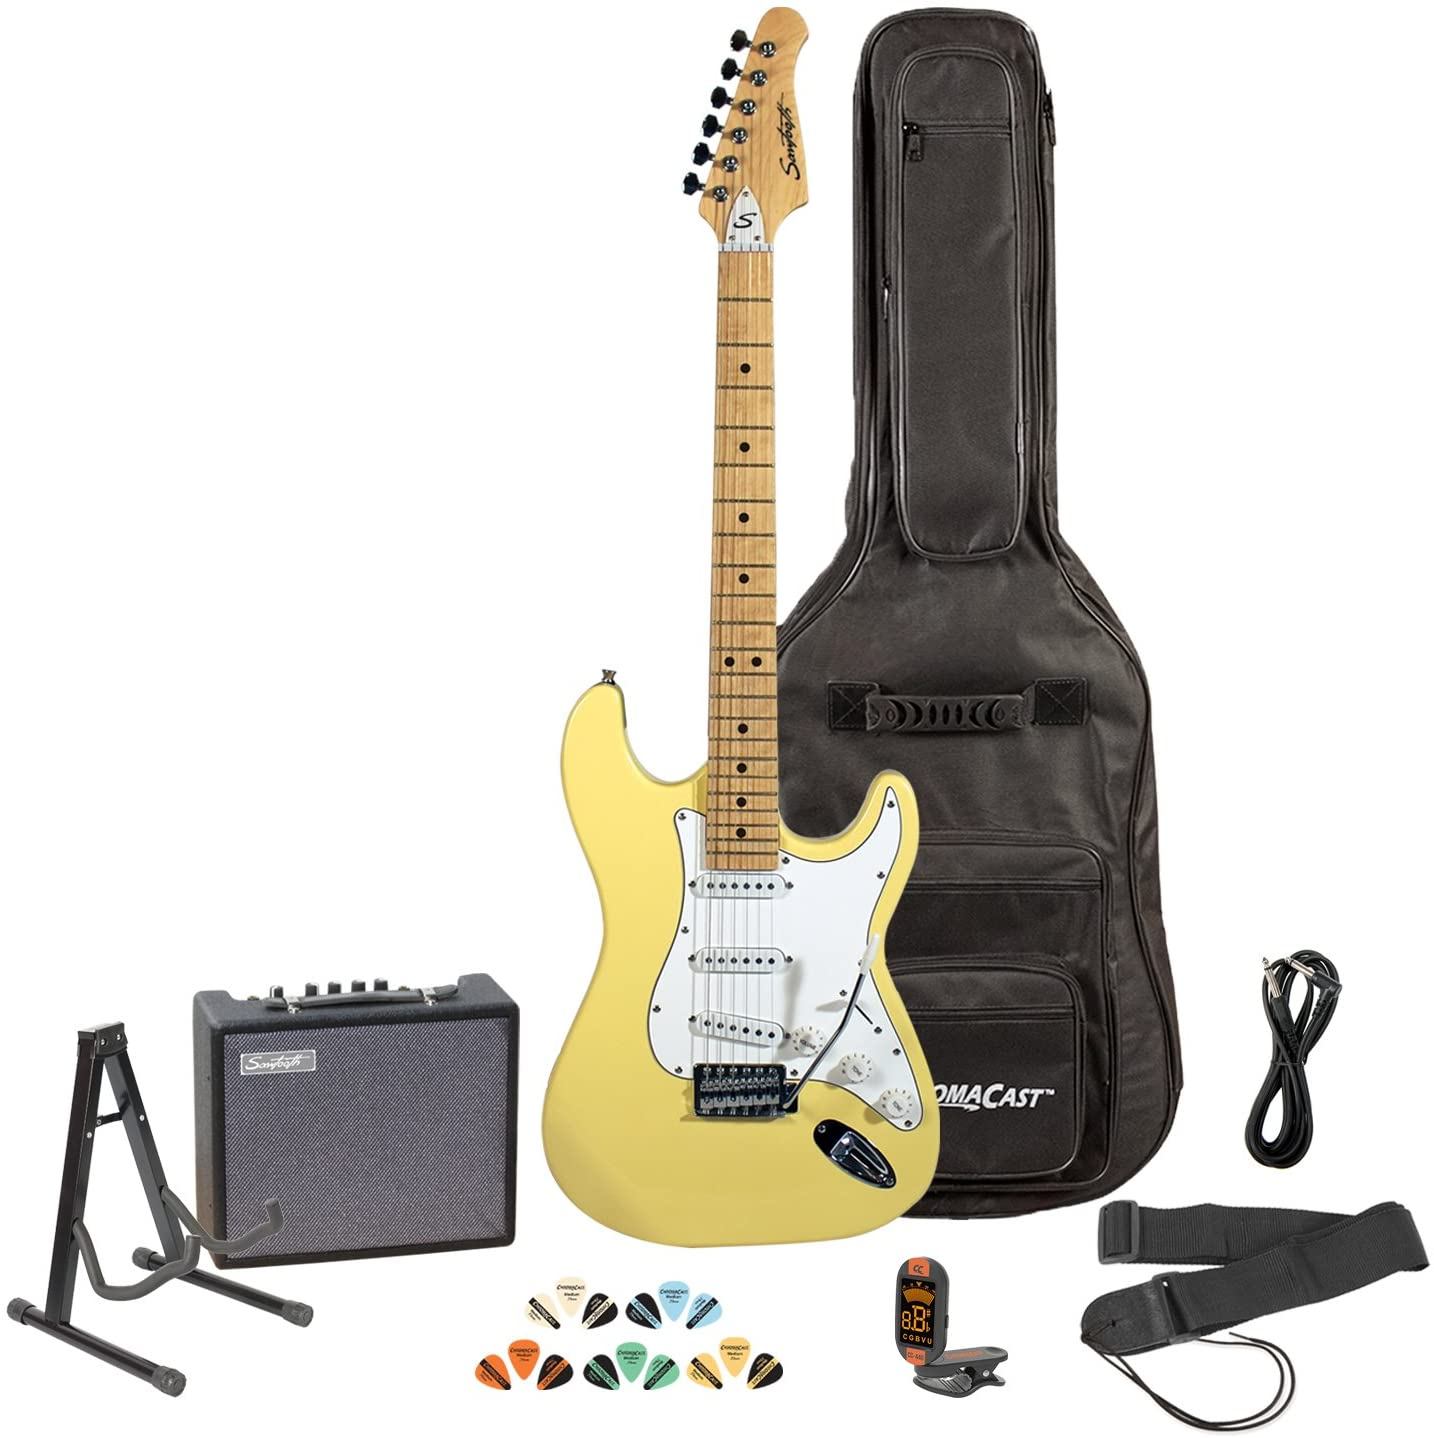 Sawtooth Citron Vanilla Cream Electric Guitar w/White Pickguard - Includes: Accessories, Amp, Gig Bag & Lesson